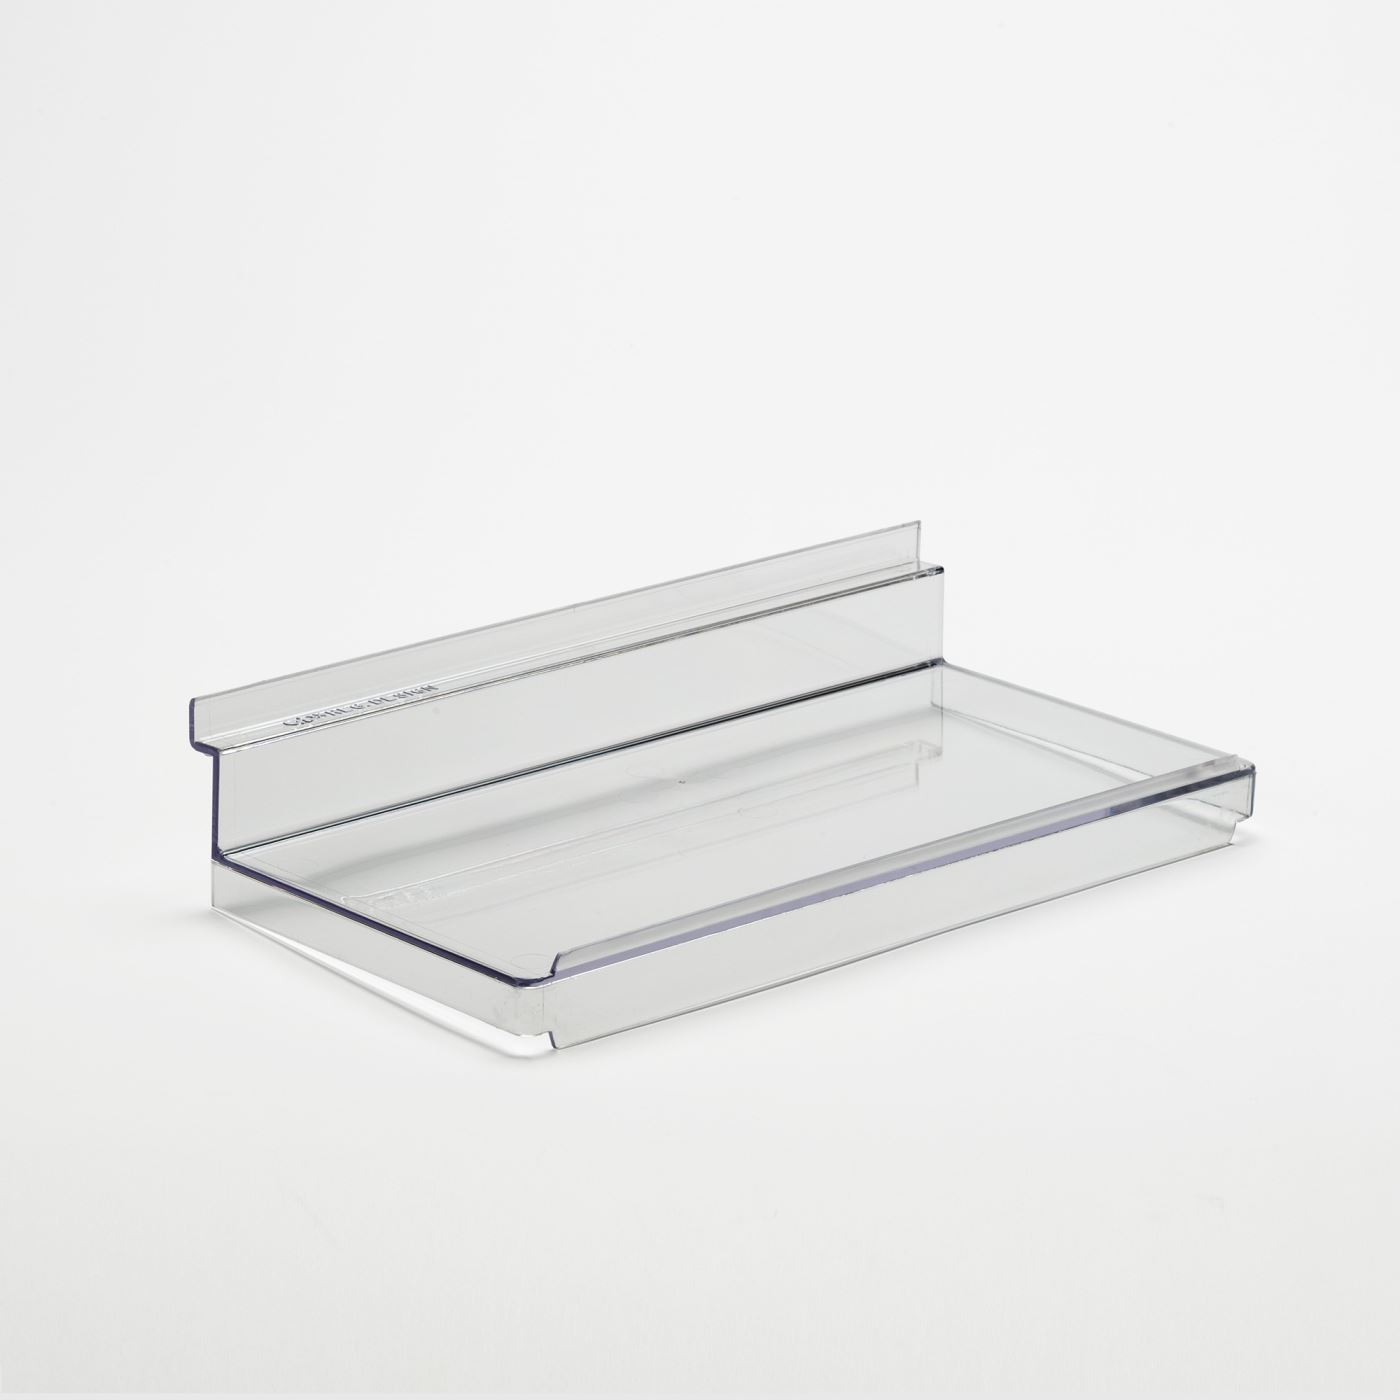 Details About Slat Flat Shelf With Lip Slatwall Fix Acrylics Perspex Shelves 250mm Ow1100